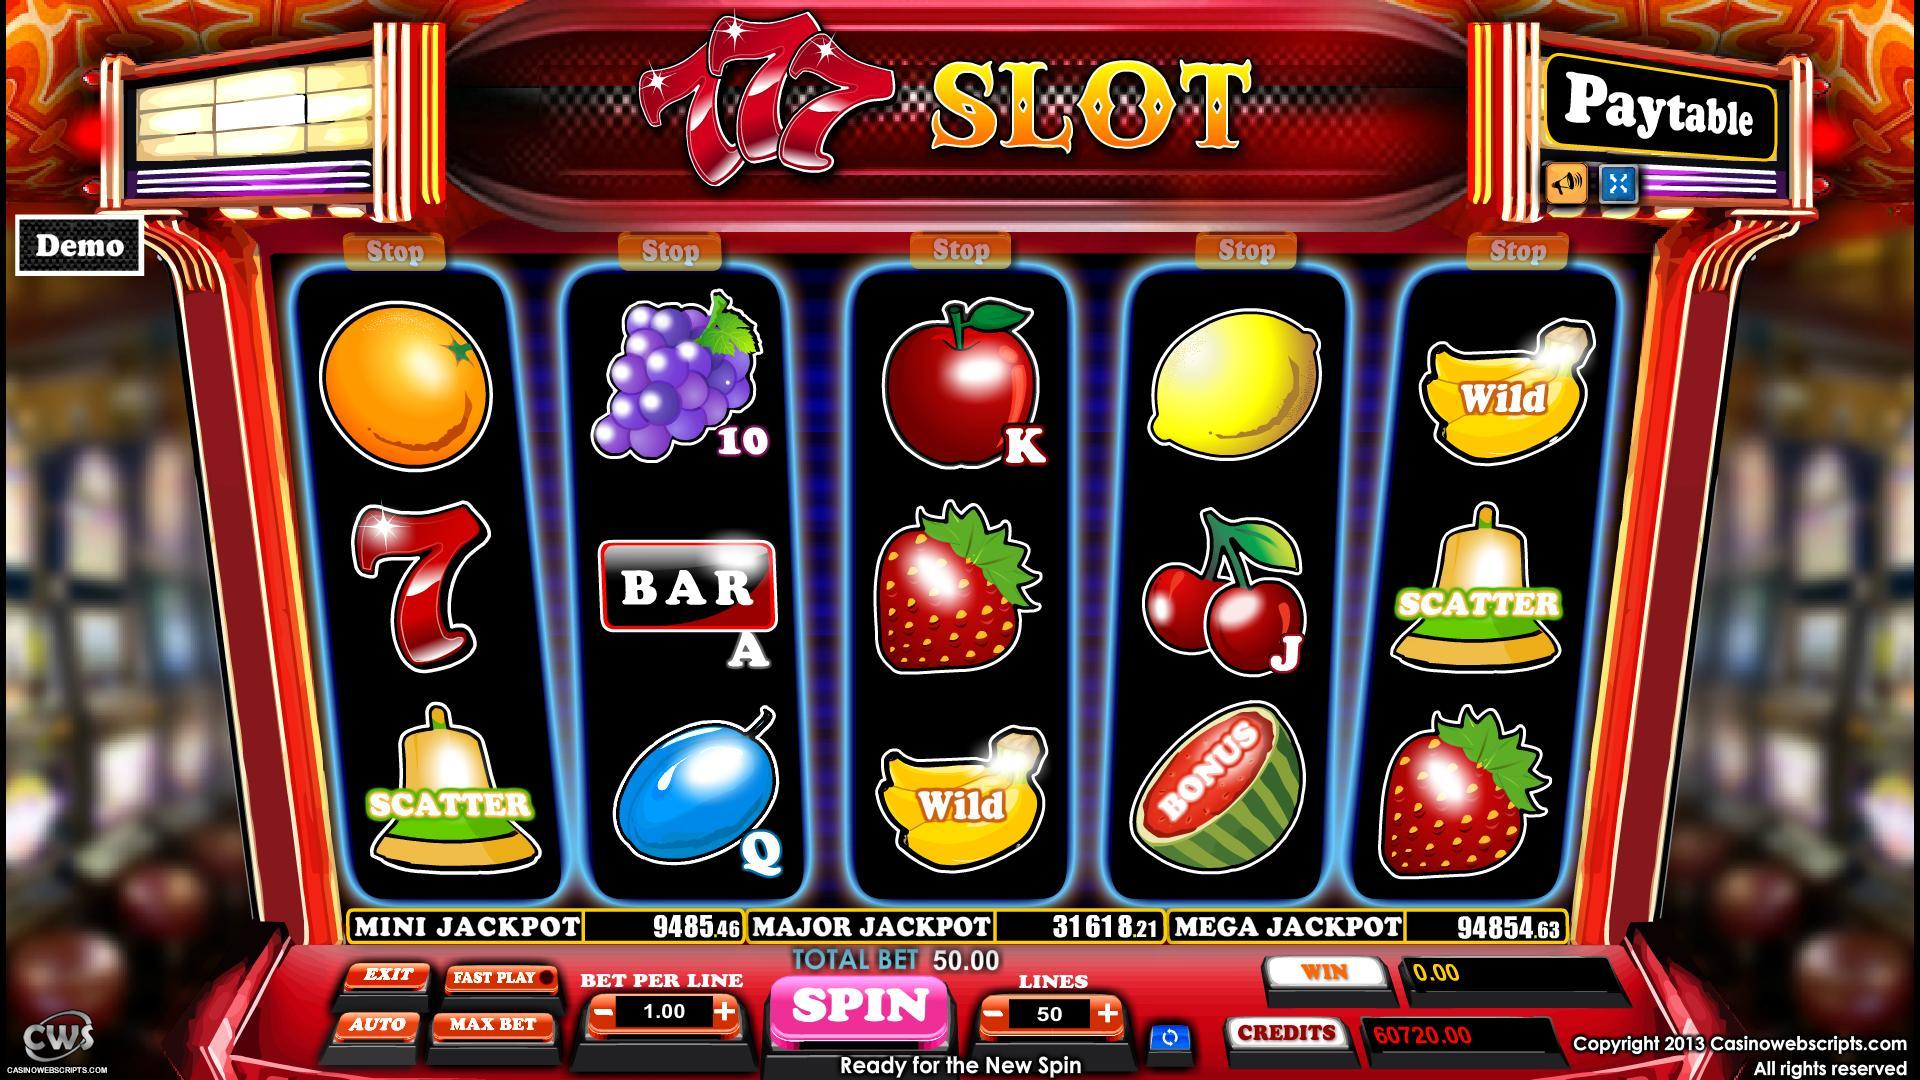 All win slot machine